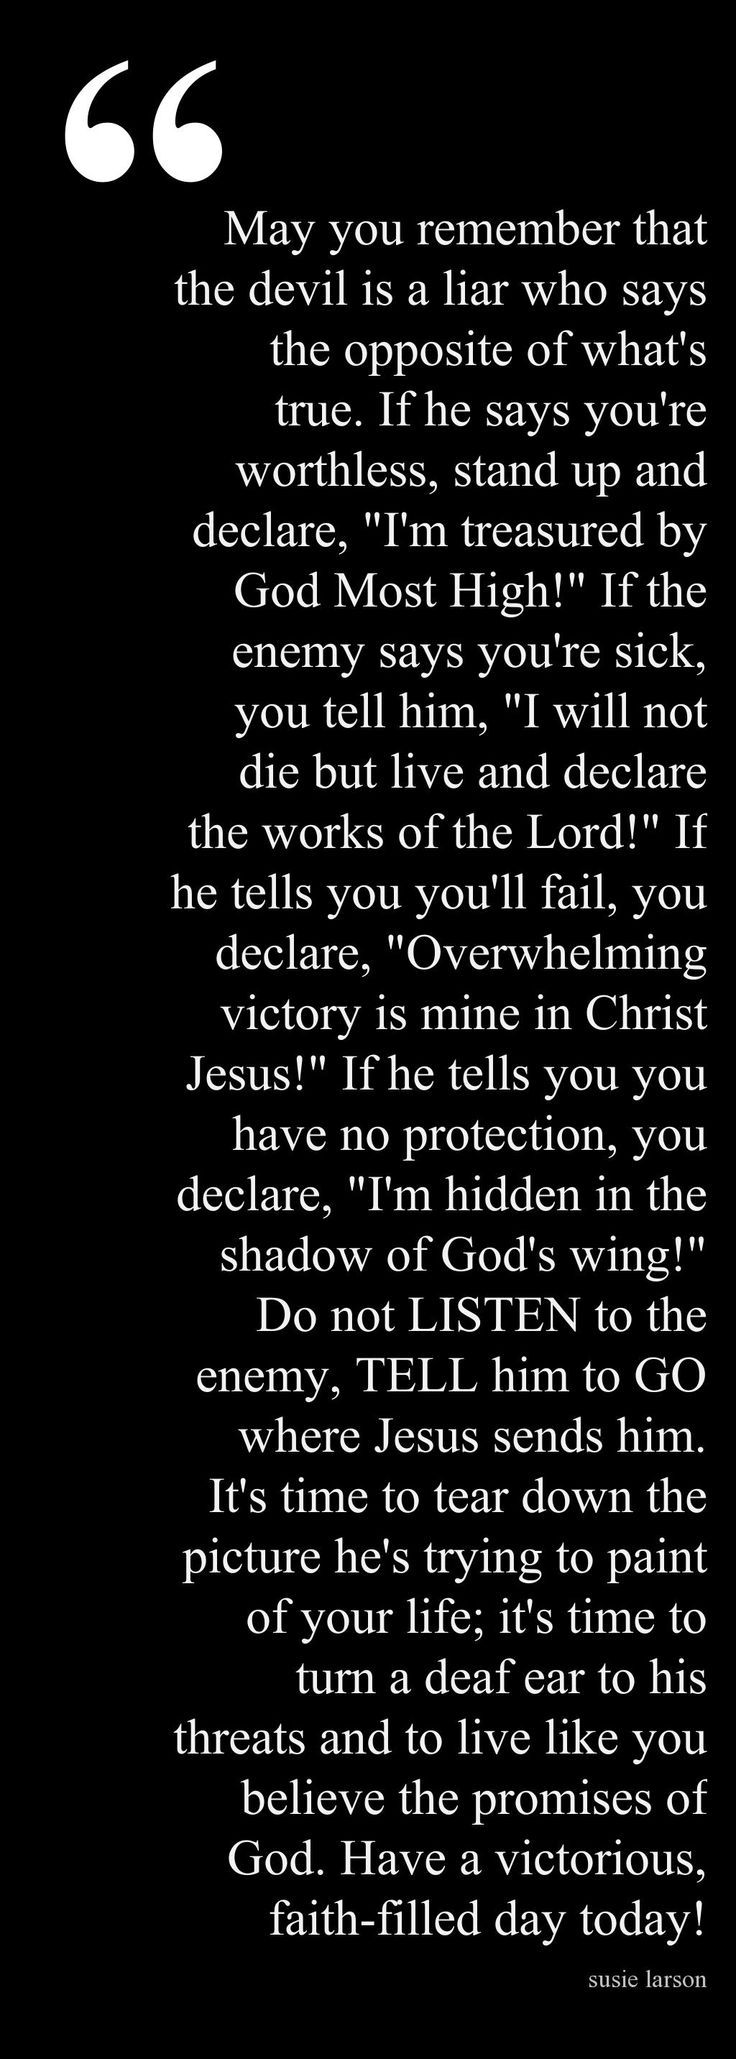 Actually kind a cried reading this God is so good and he cares so much for you and I He will never leave you he will never hurt you or forsake you